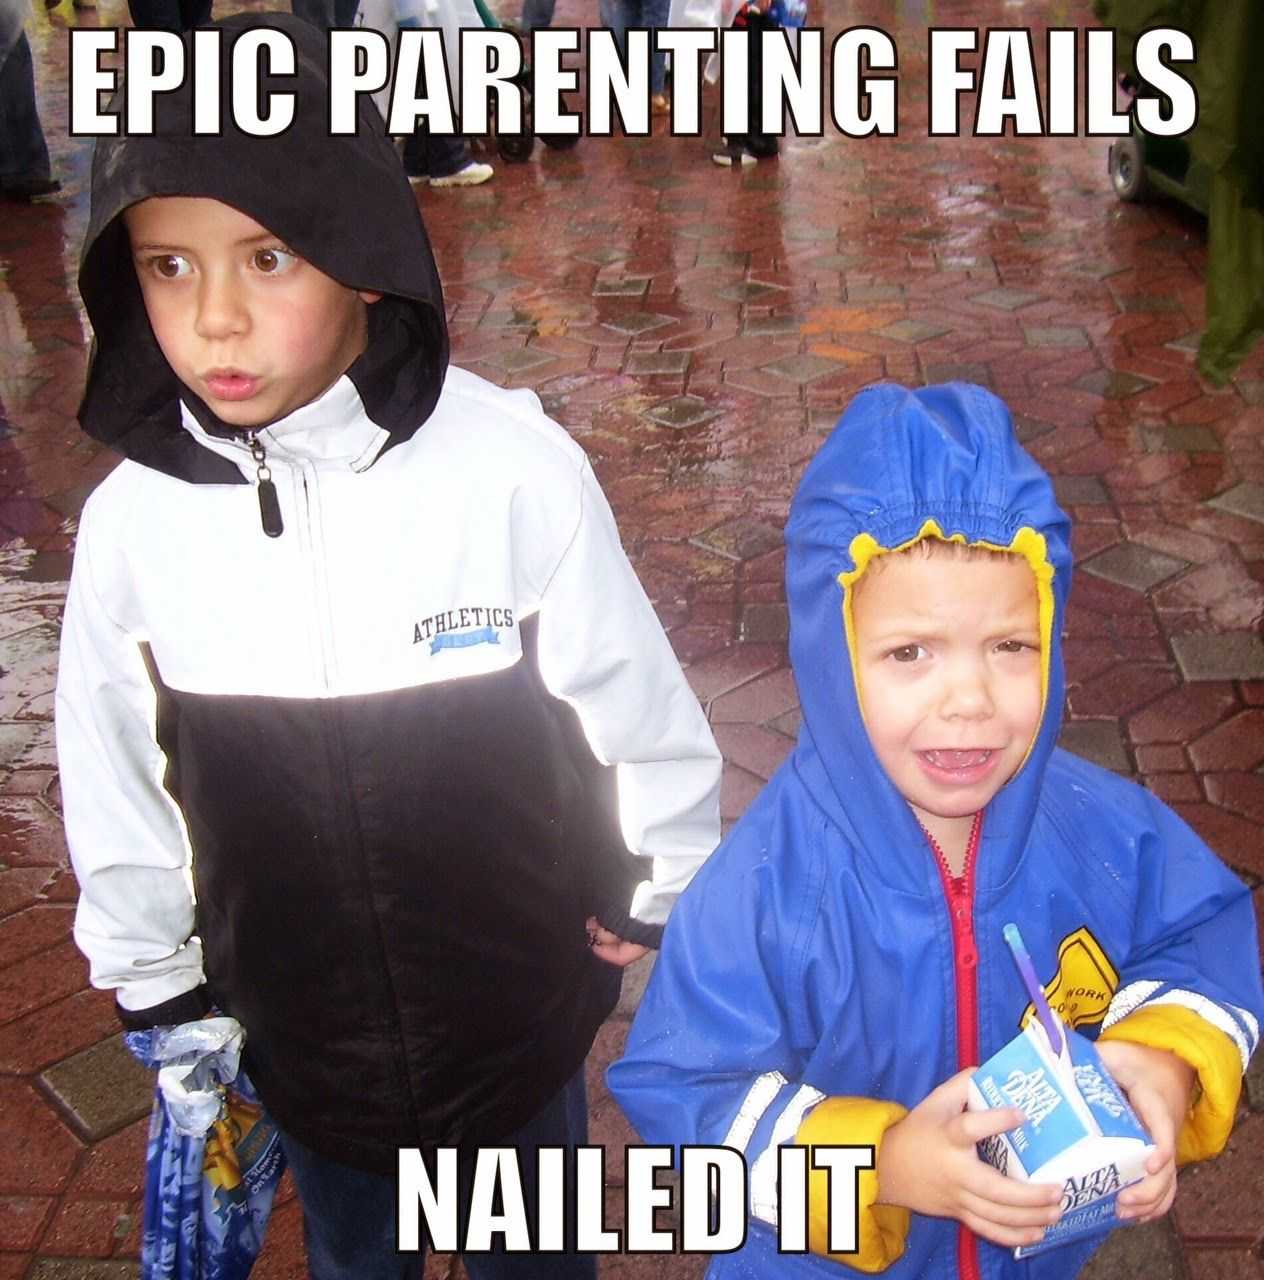 Epic parenting fails opinion you